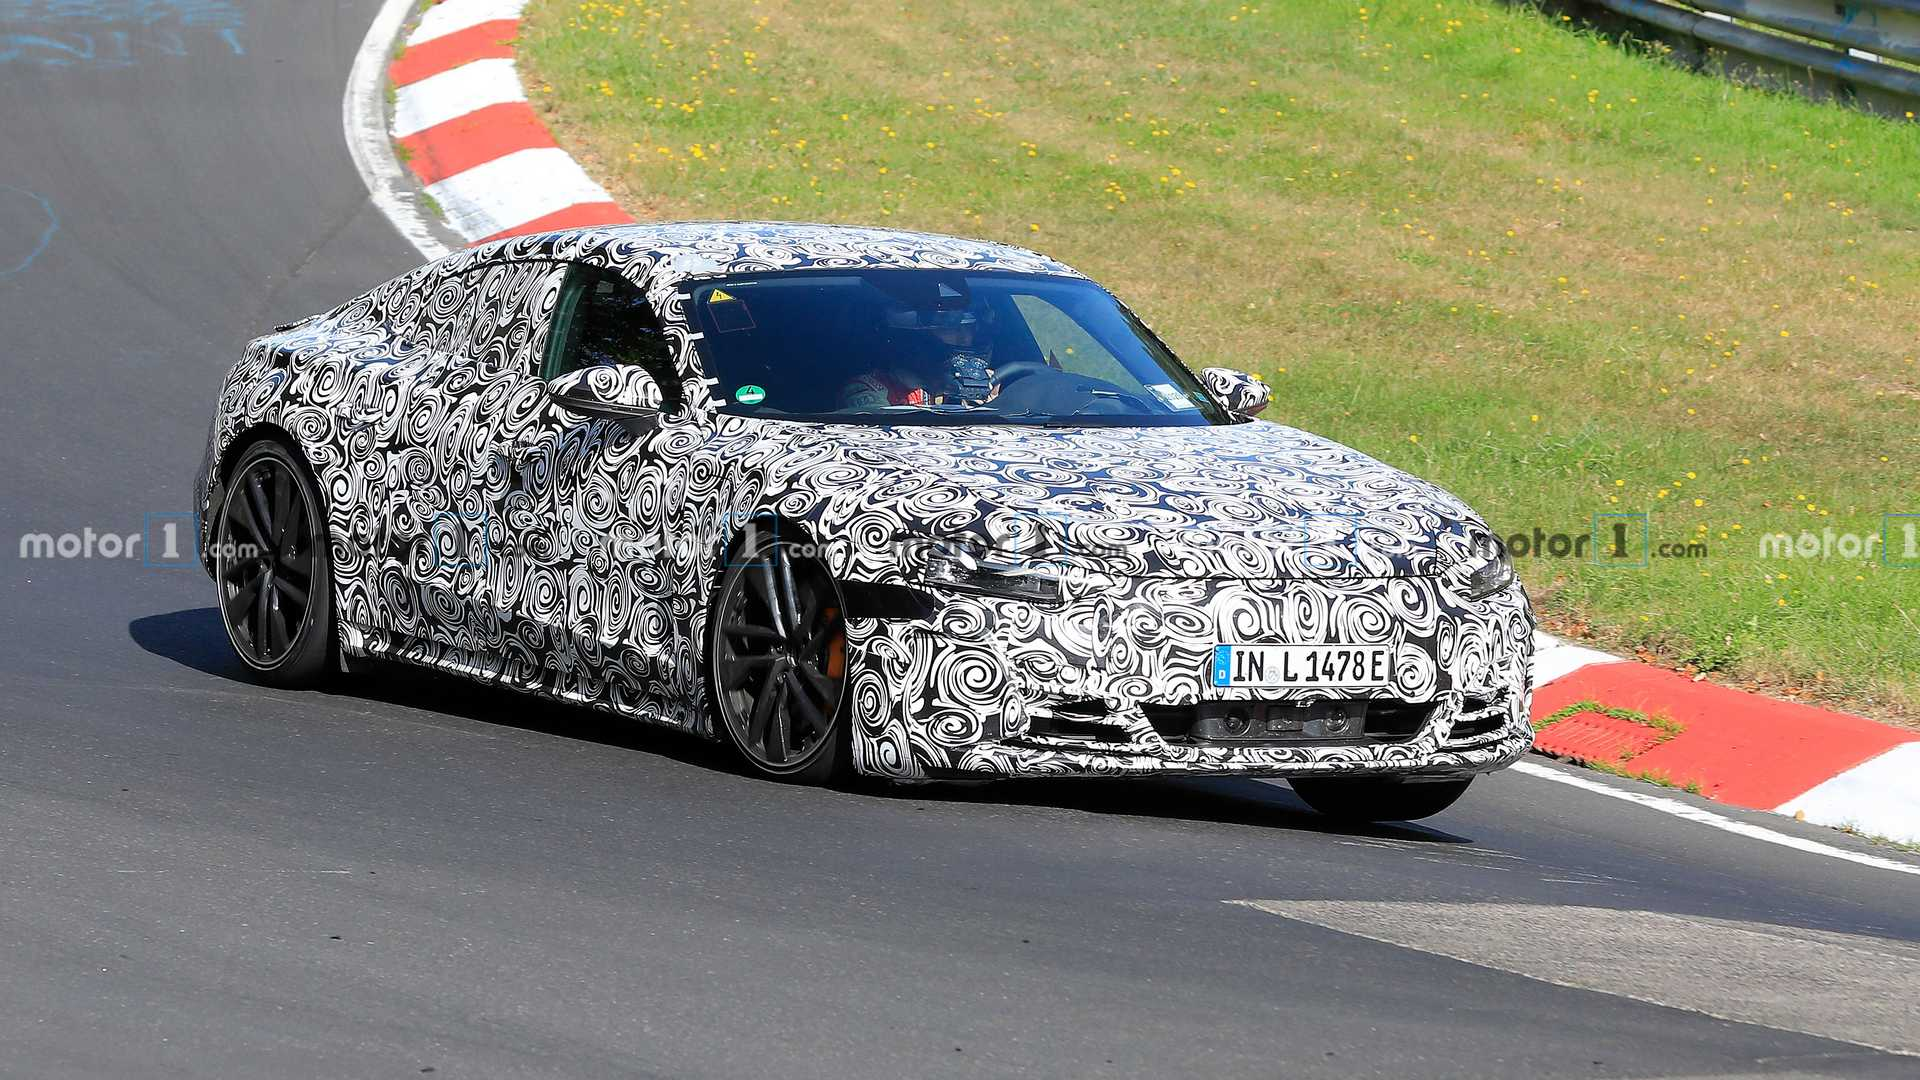 2021 audi e-tron gt spied looking glued to the nurburgring